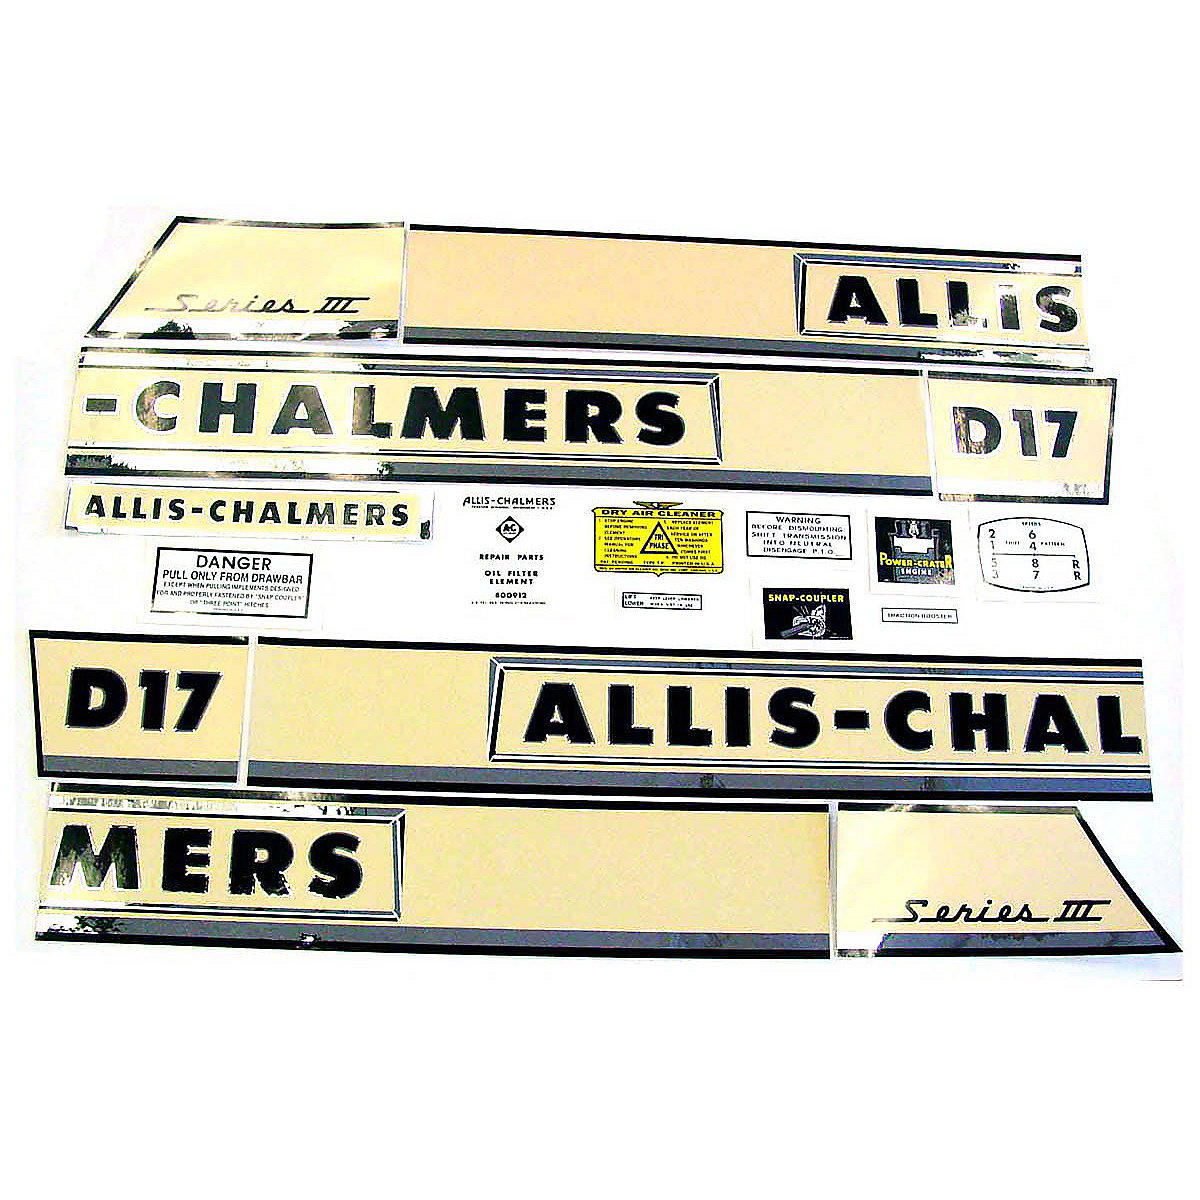 Decal Set For Allis Chalmers D17 III Series Gas Tractors 1962 to 1964 Vinyl Only